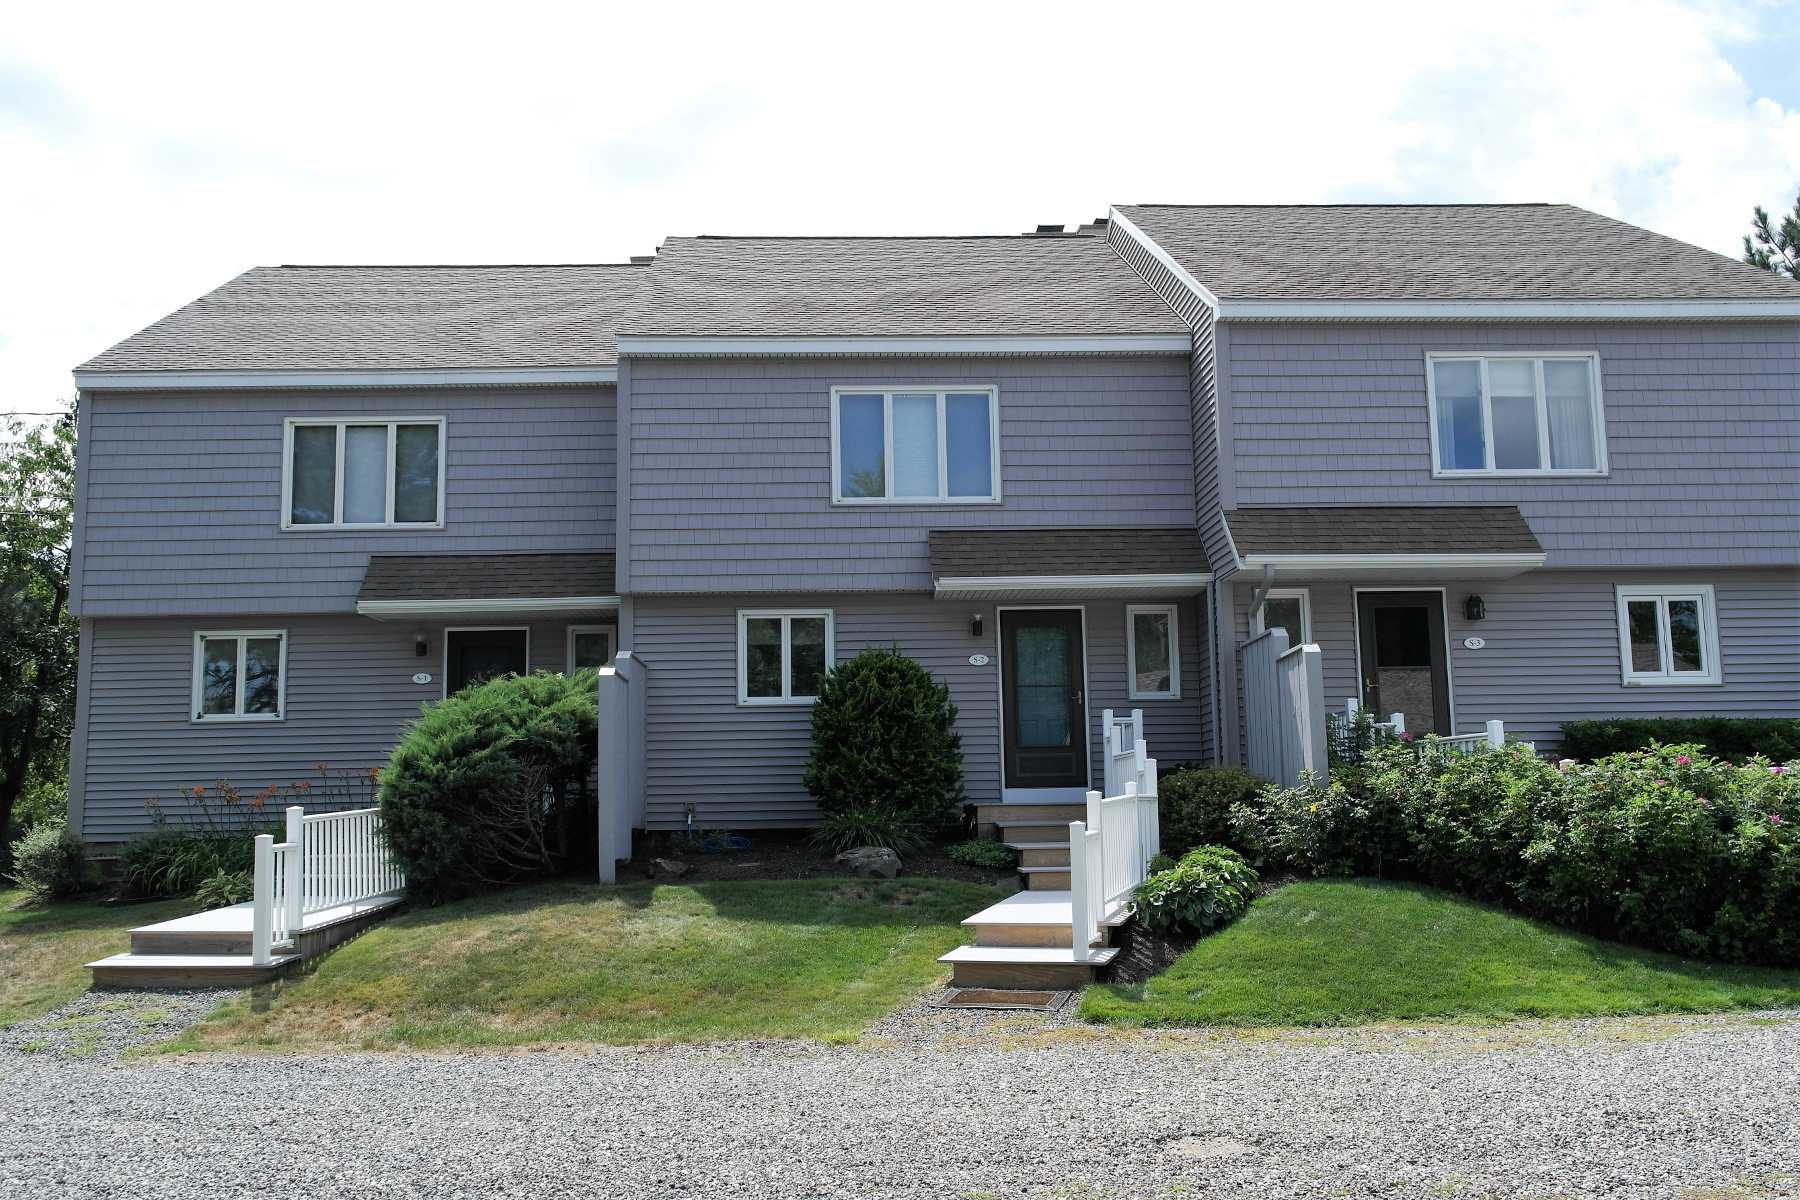 Townhouse for Sale at Marsh Views - Walk to Beach 778 Ocean Avenue #5 Wells, Maine, 04090 United States